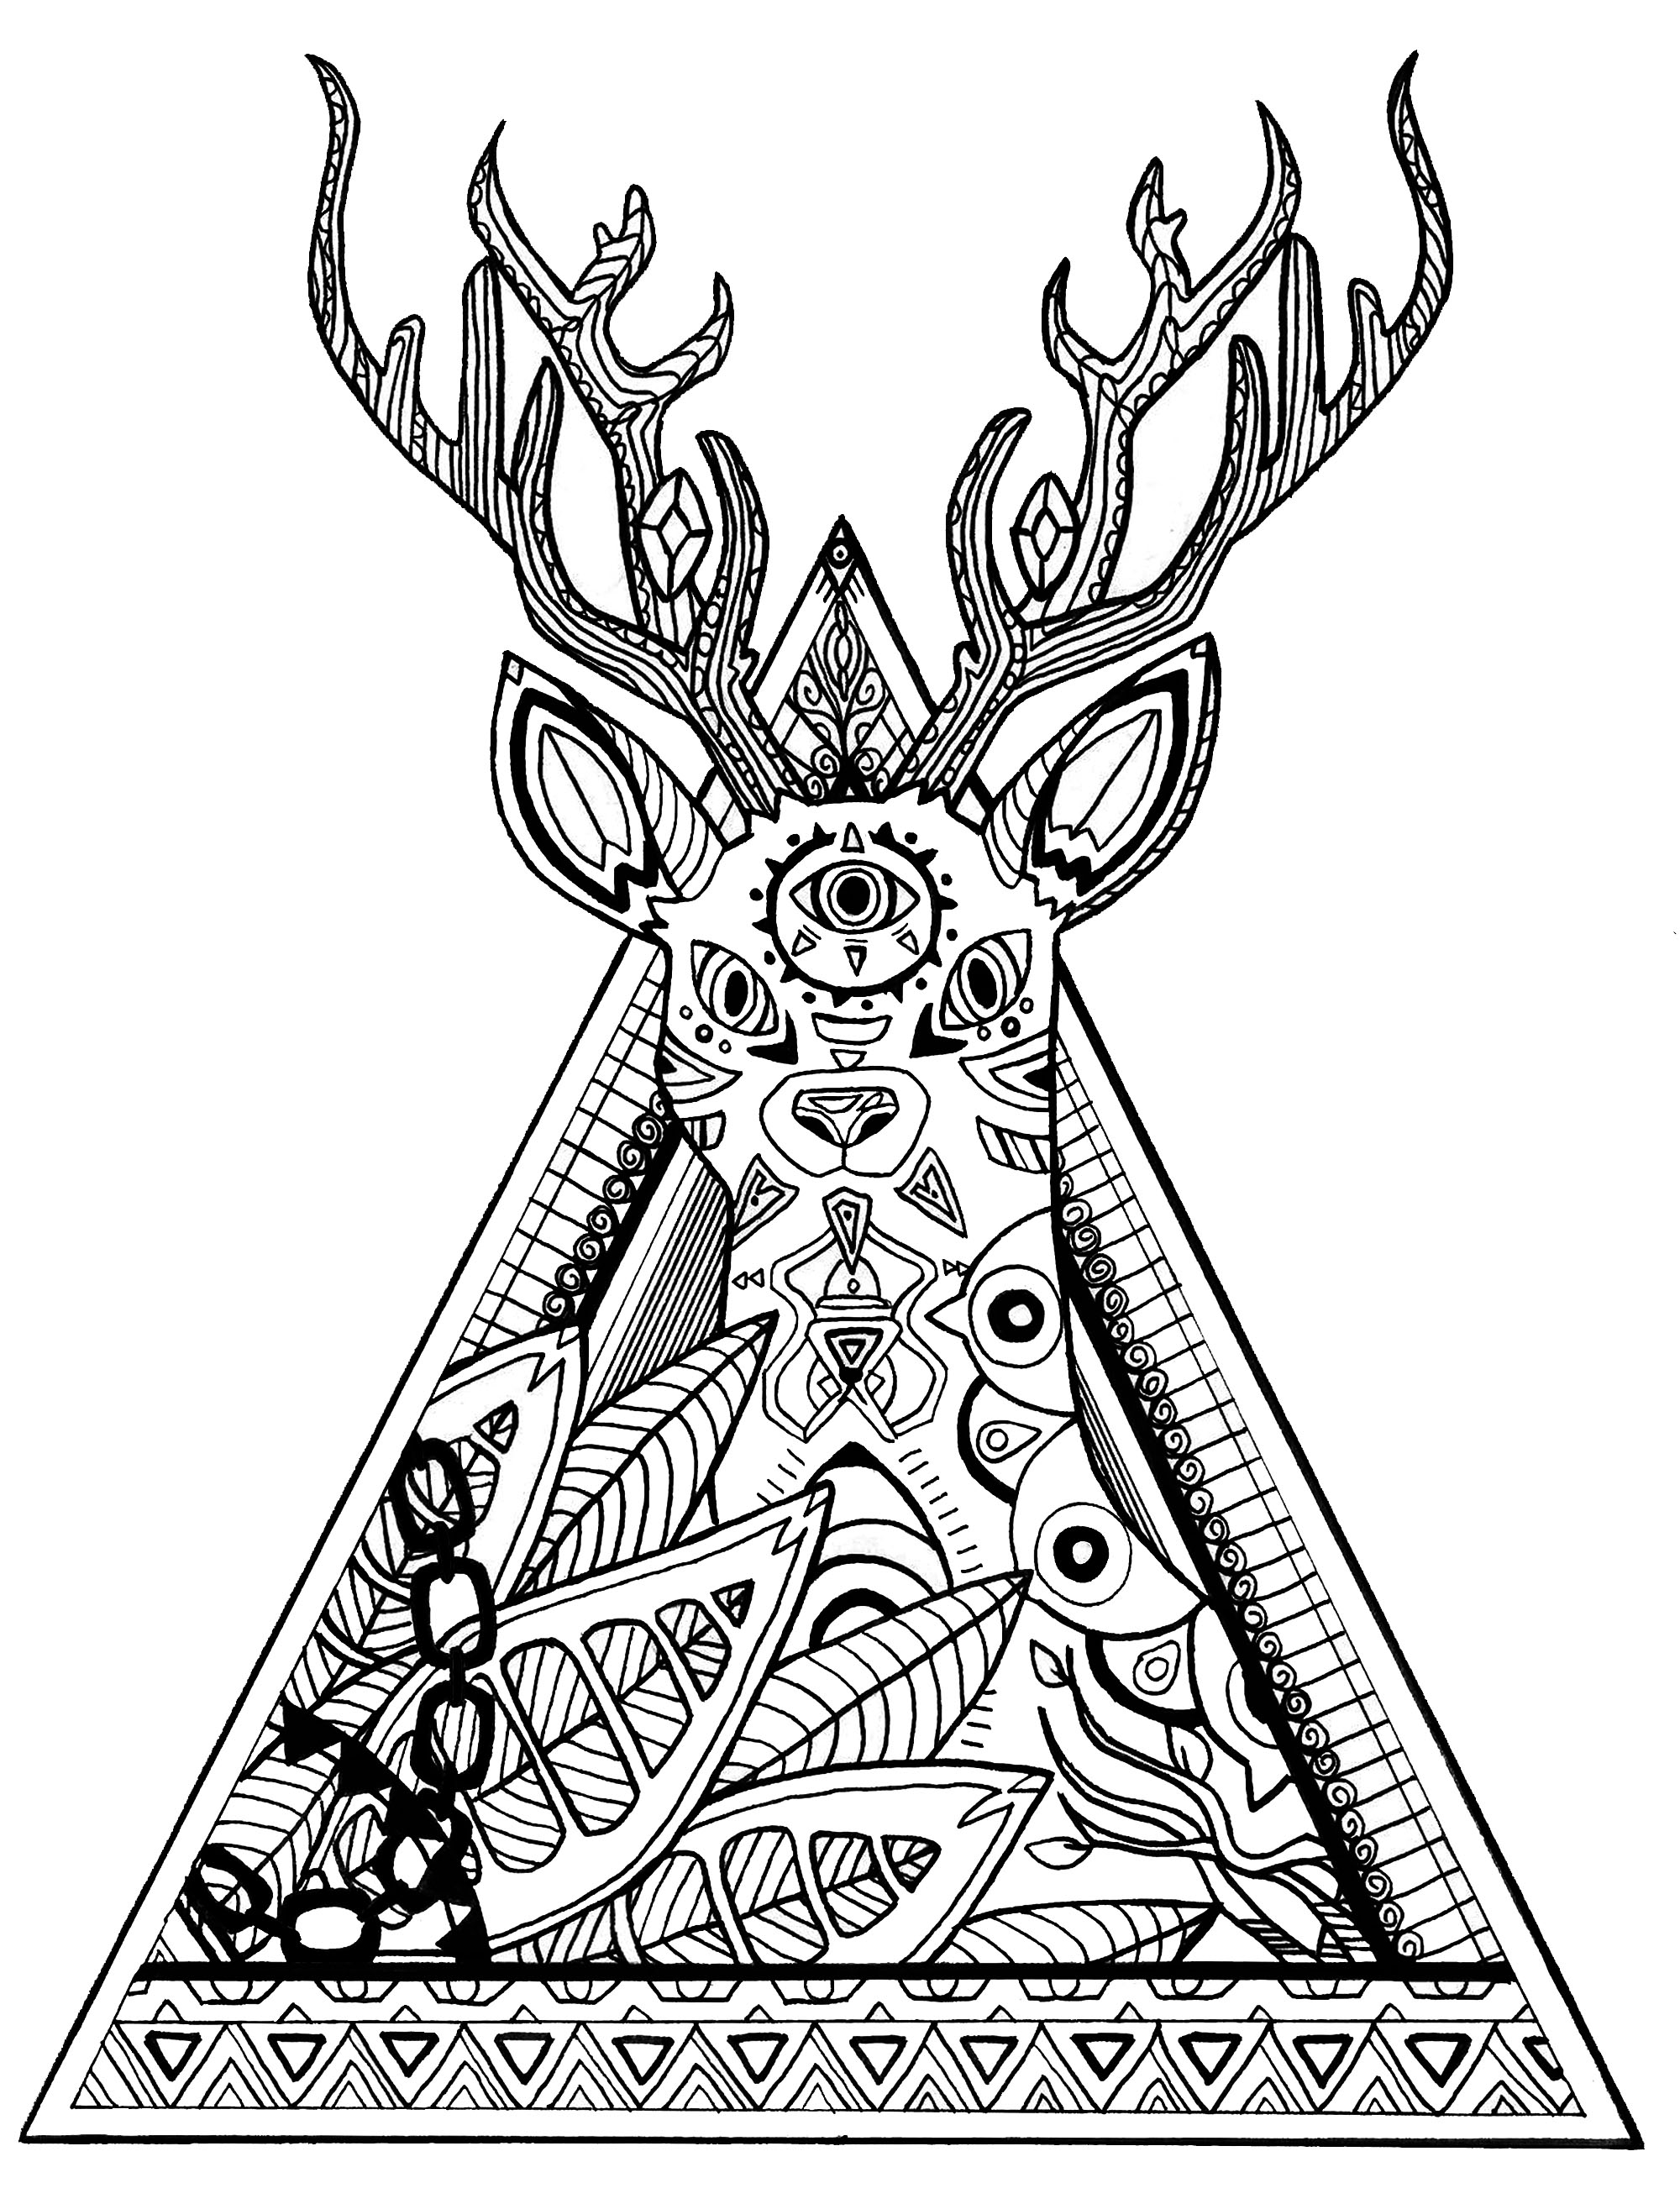 print - Deer Coloring Pages